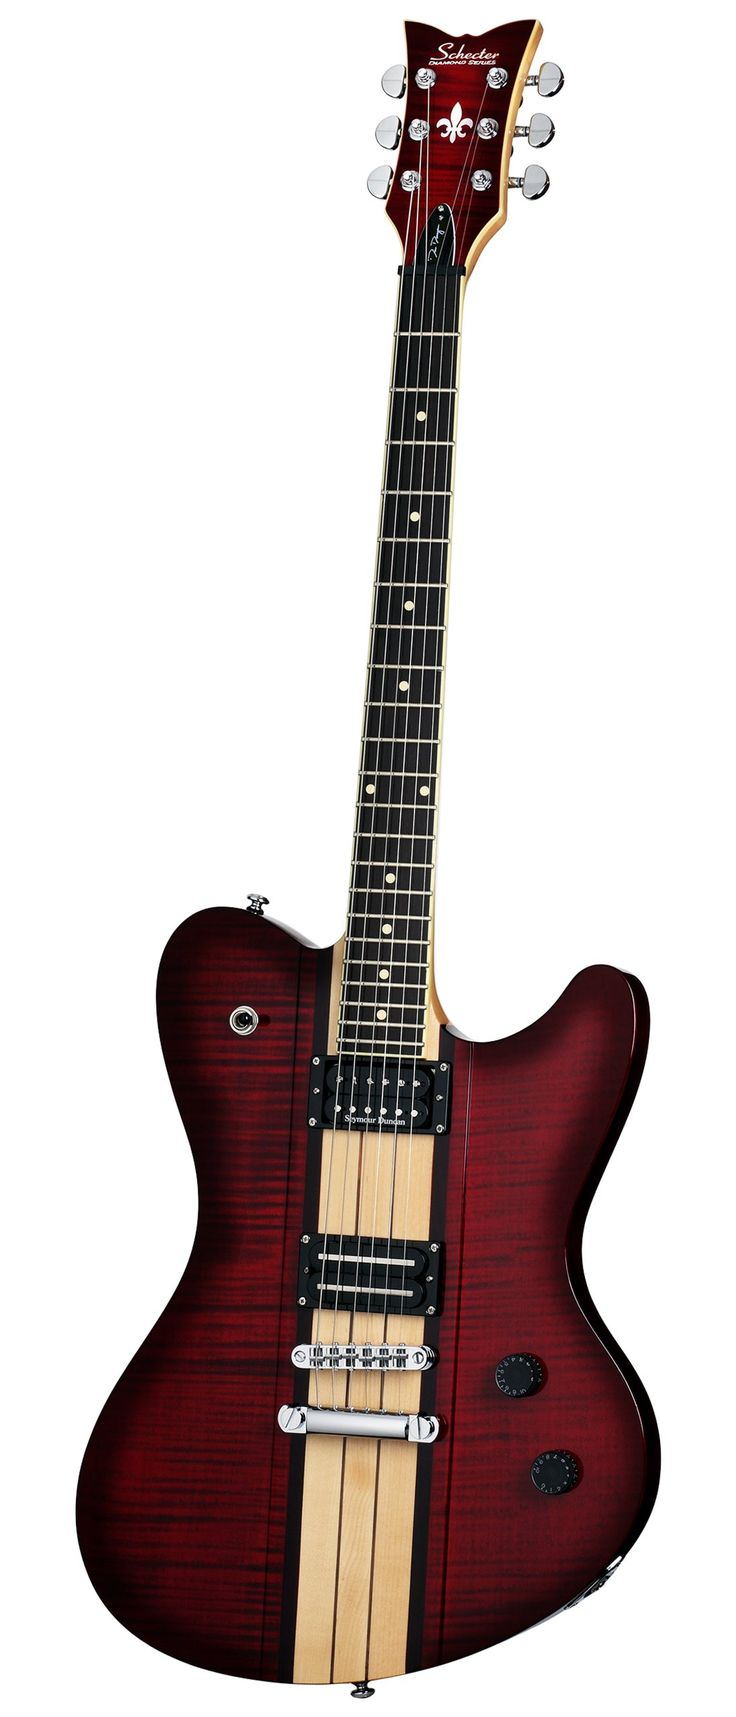 Schecter Dan Donegan Signature Guitar, Ultra DD. Mahogany Body with flame maple wings and raised center. Seymour Duncan Custom Shop El Diablo/Schecter Diamond Plus . TonePros Tune-O-Matic System. Schecter Locking Tuners. Chrome Hardware.